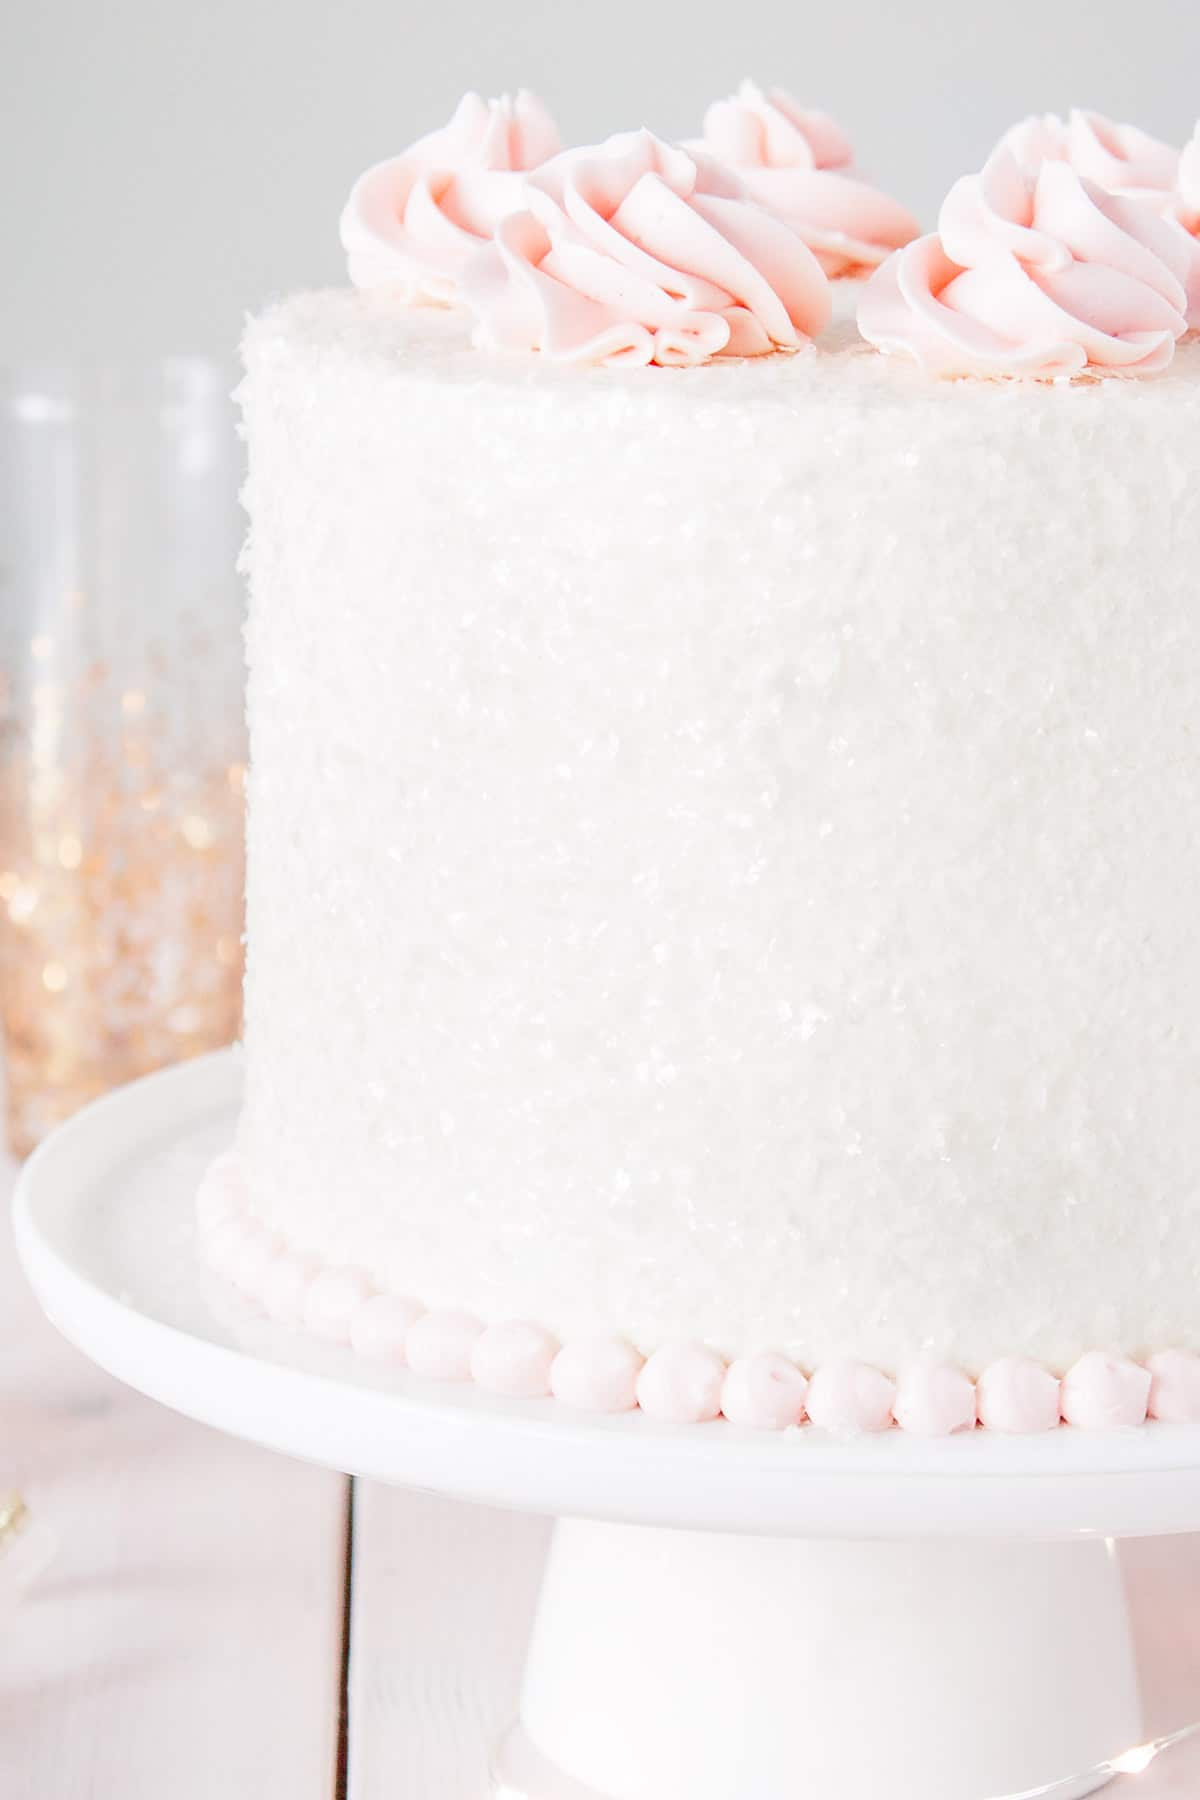 Pink champagne cake with white frosting coasted in sparkling sugar